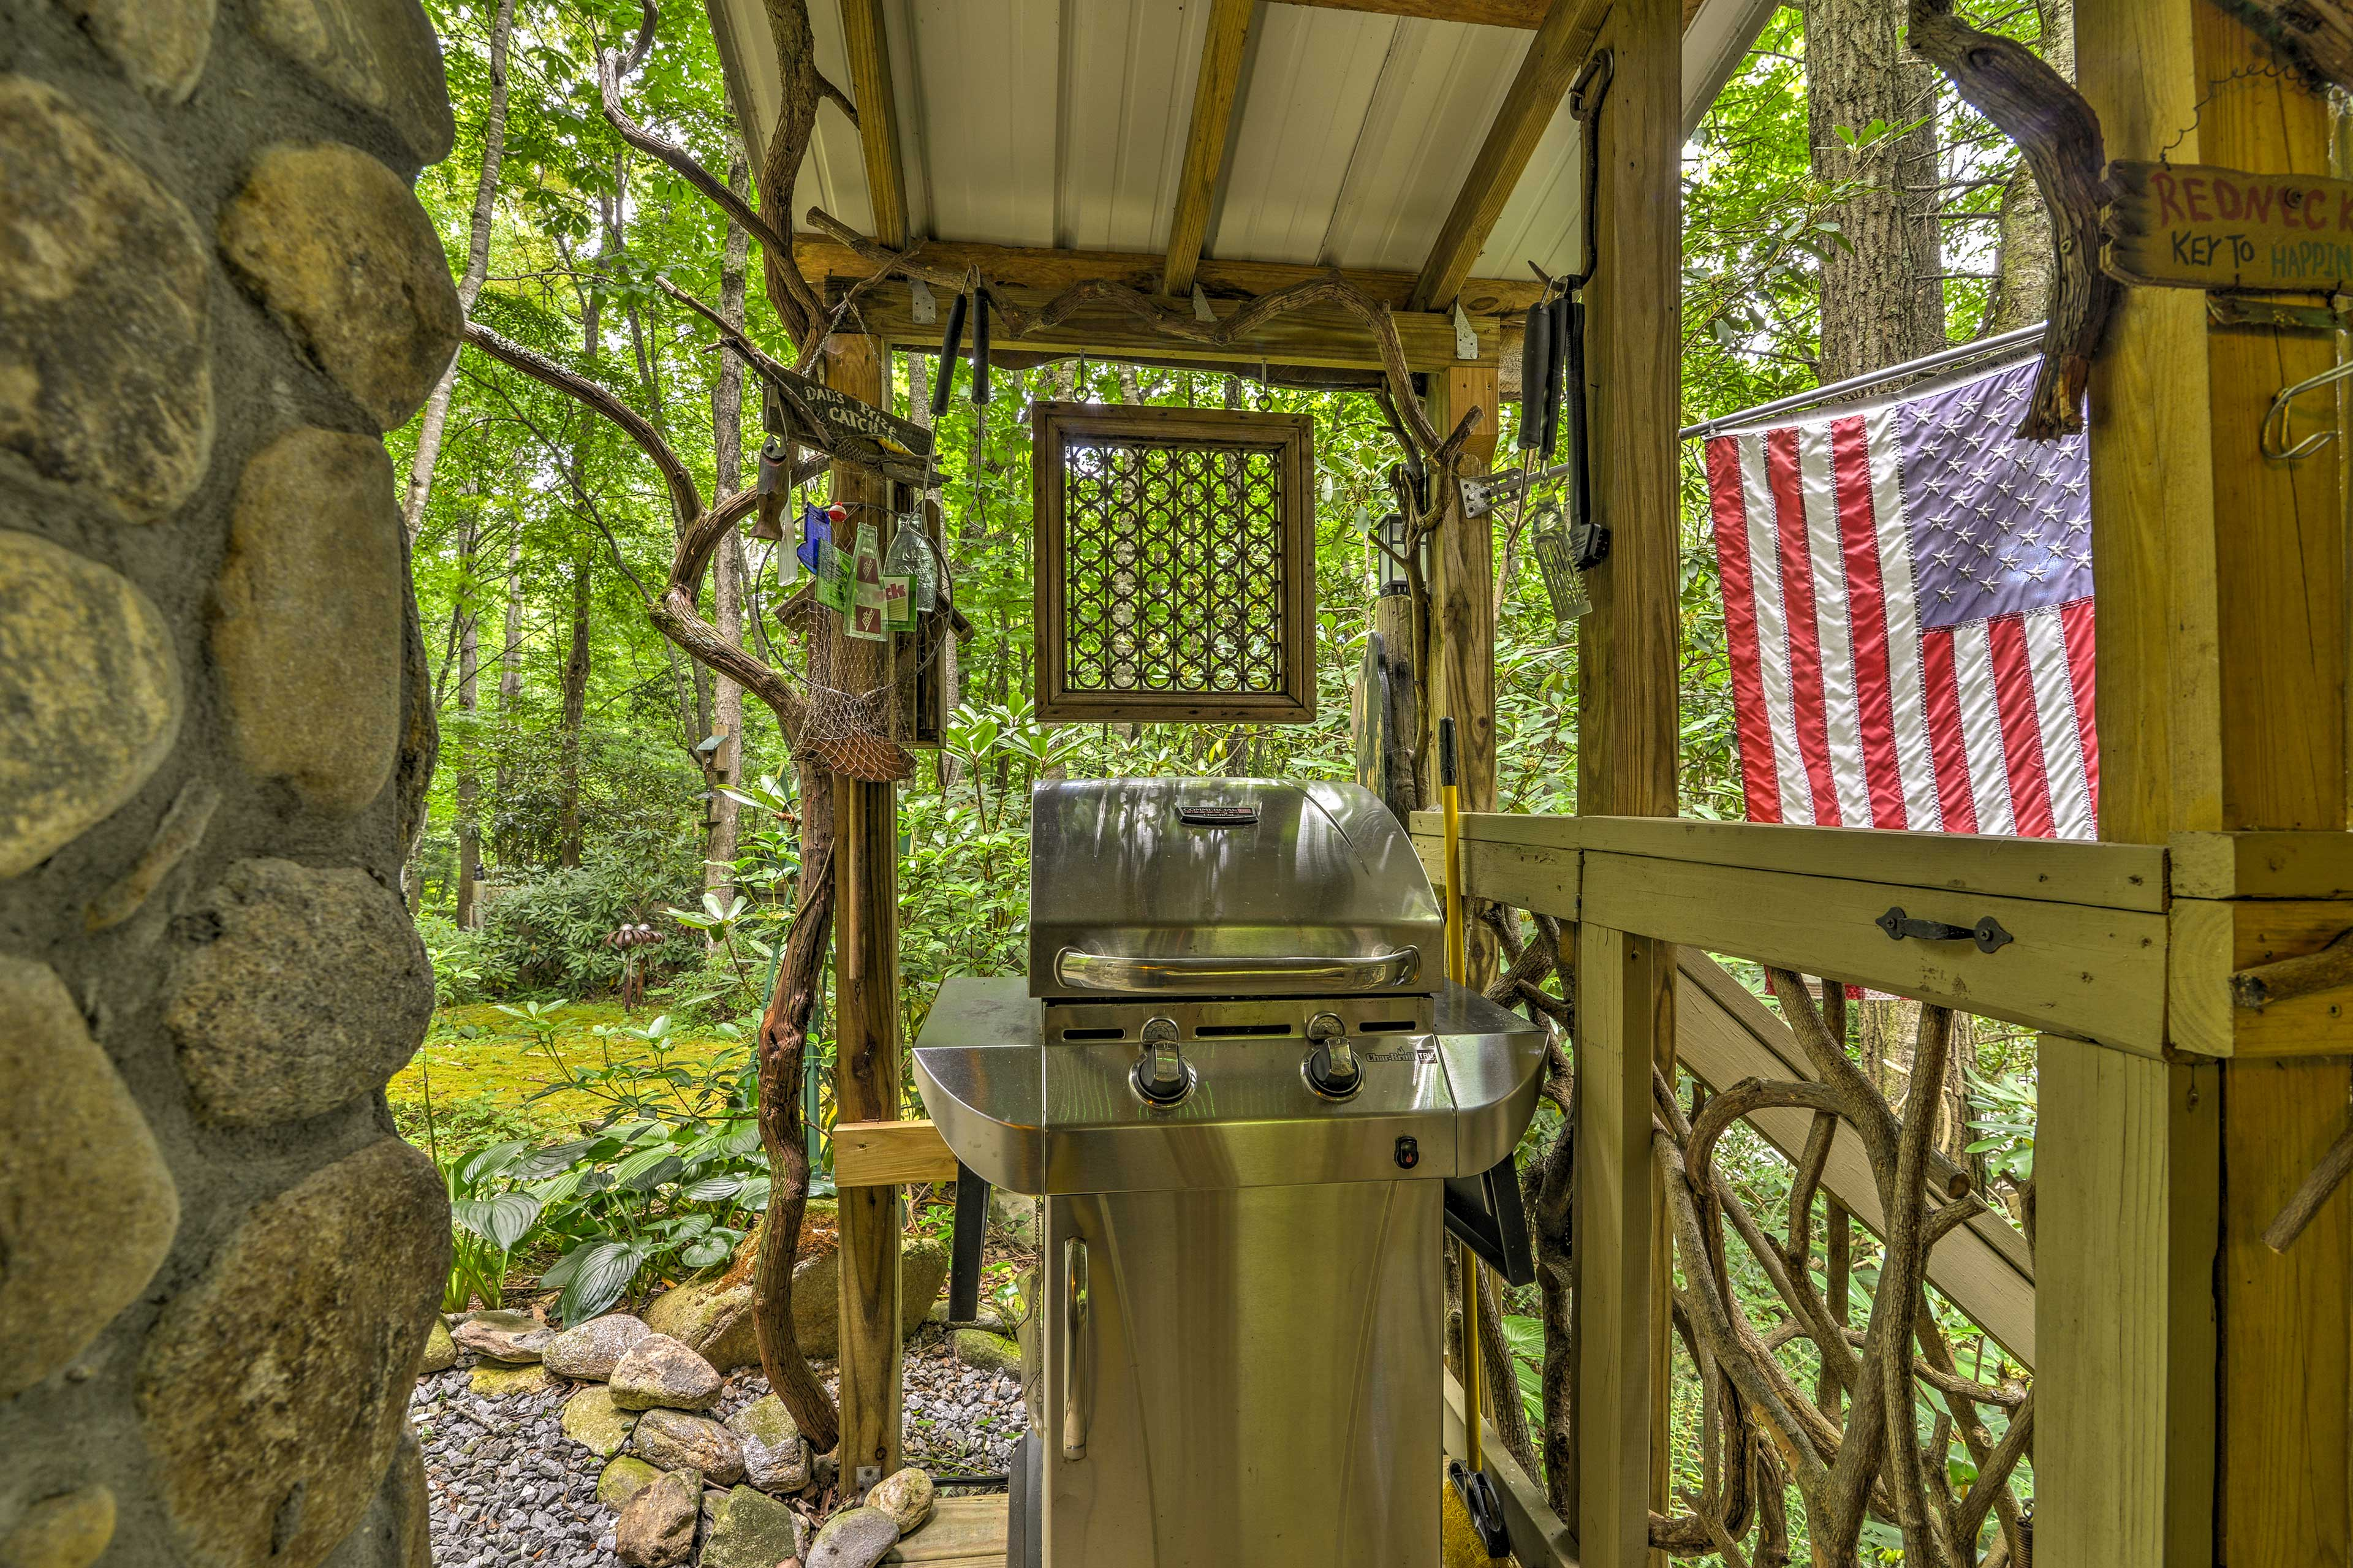 The gas grill is perfect for afternoon barbecues.